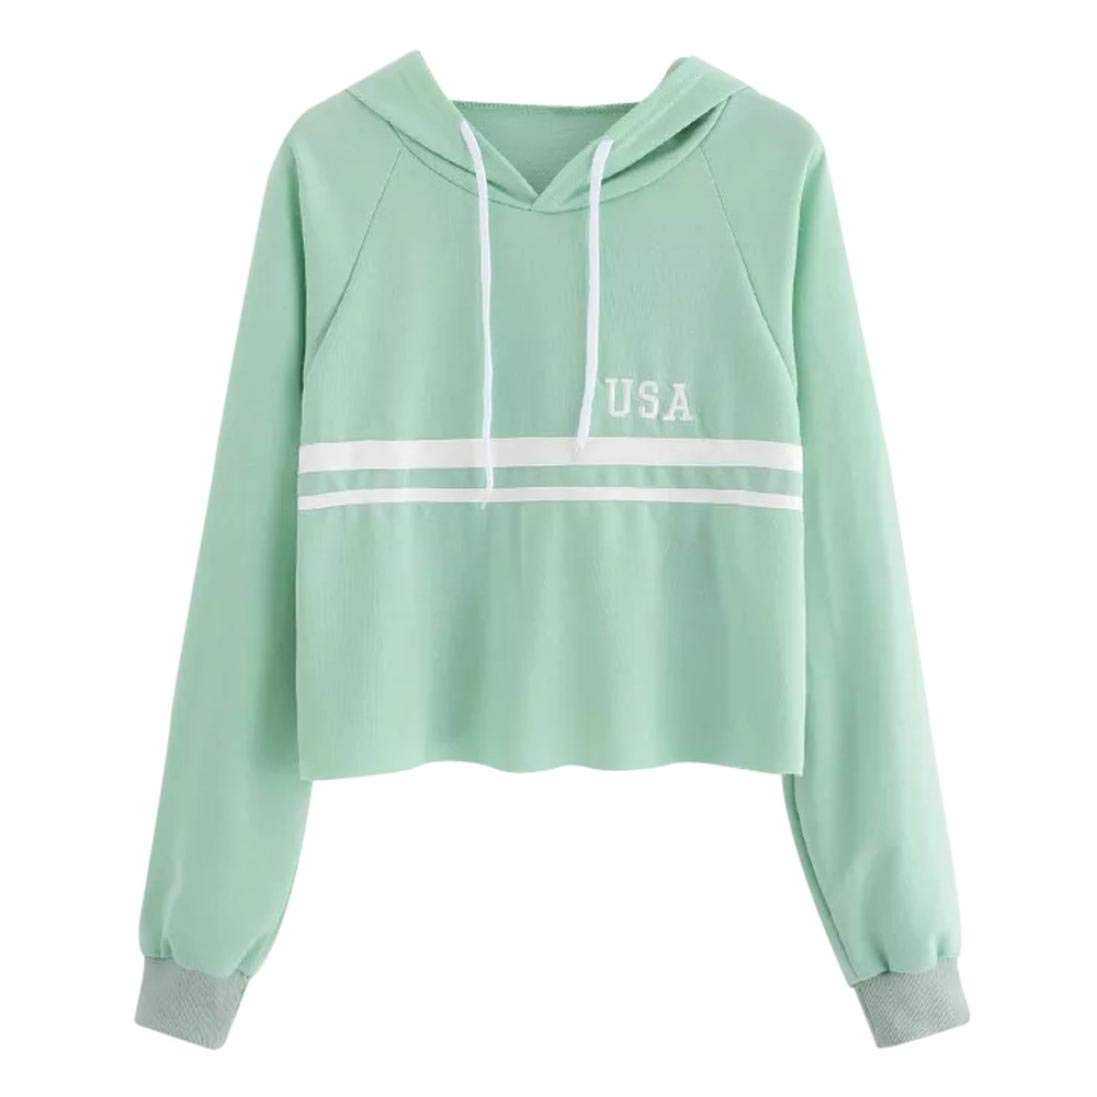 Bafaretk Womens Striped Patchwork Crop Top USA Letter Print Sweatshirt Long Sleeve Hooded (XL, Green) by Bafaretk